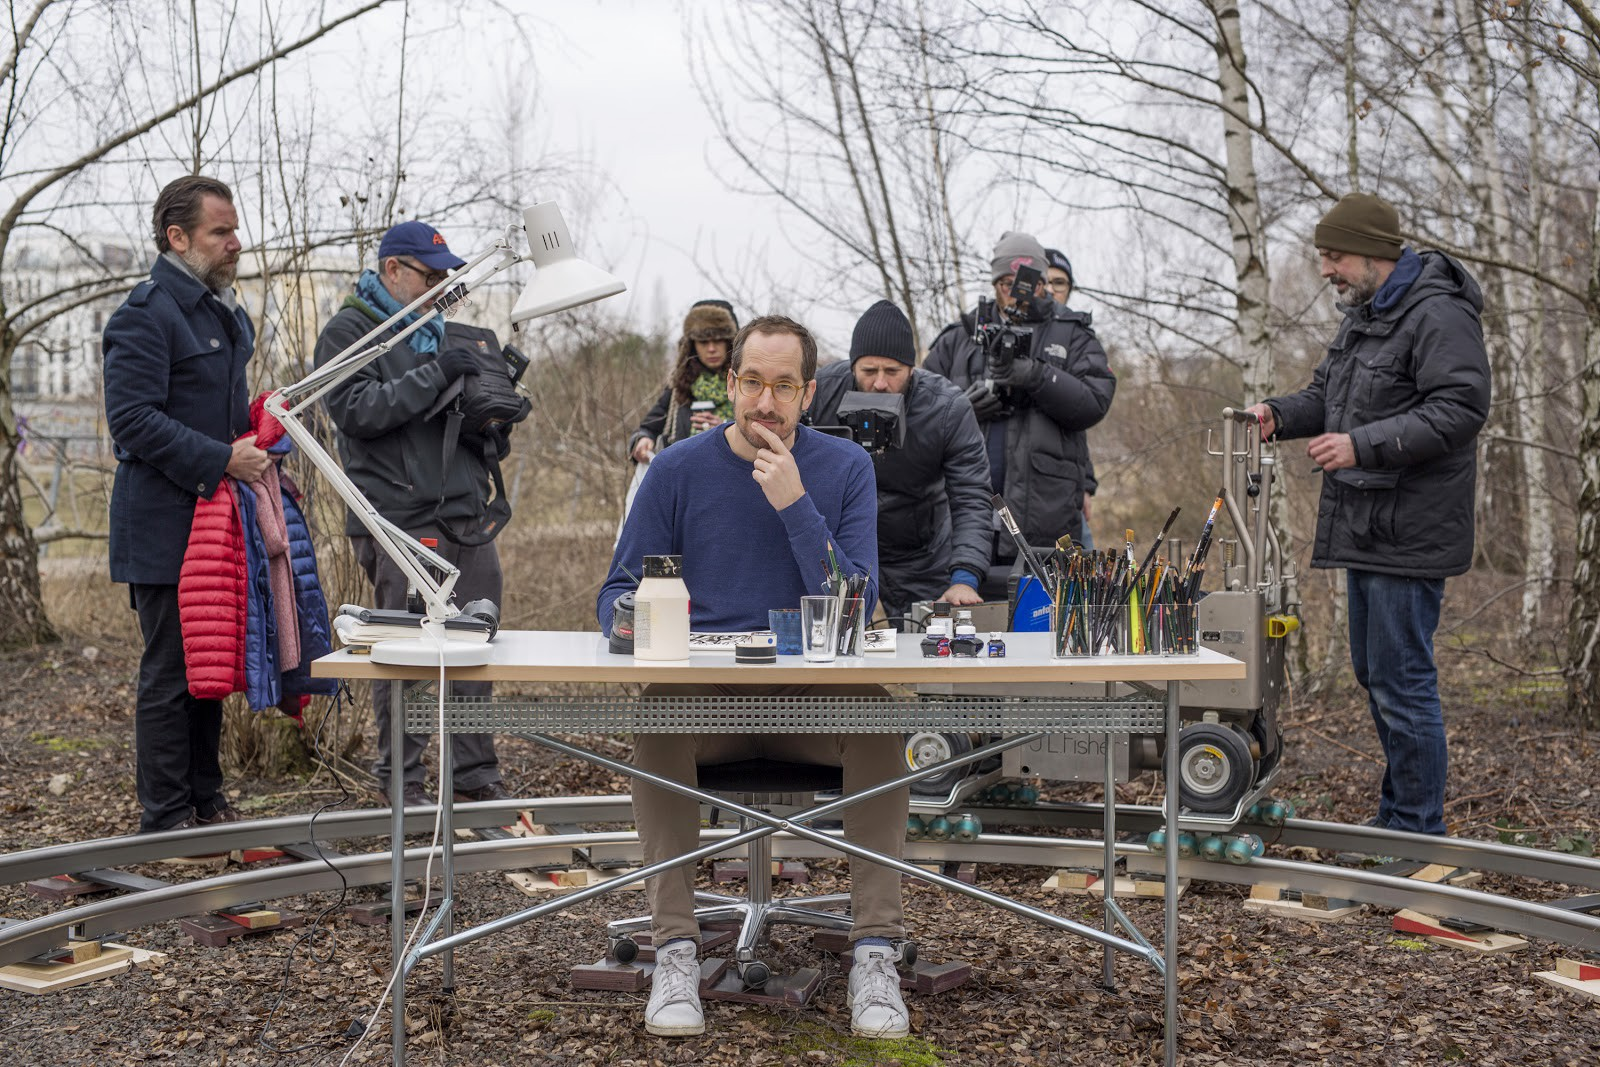 Christoph Niemann sits at a drawing desk in a Berlin park with a film crew setting up behind him.